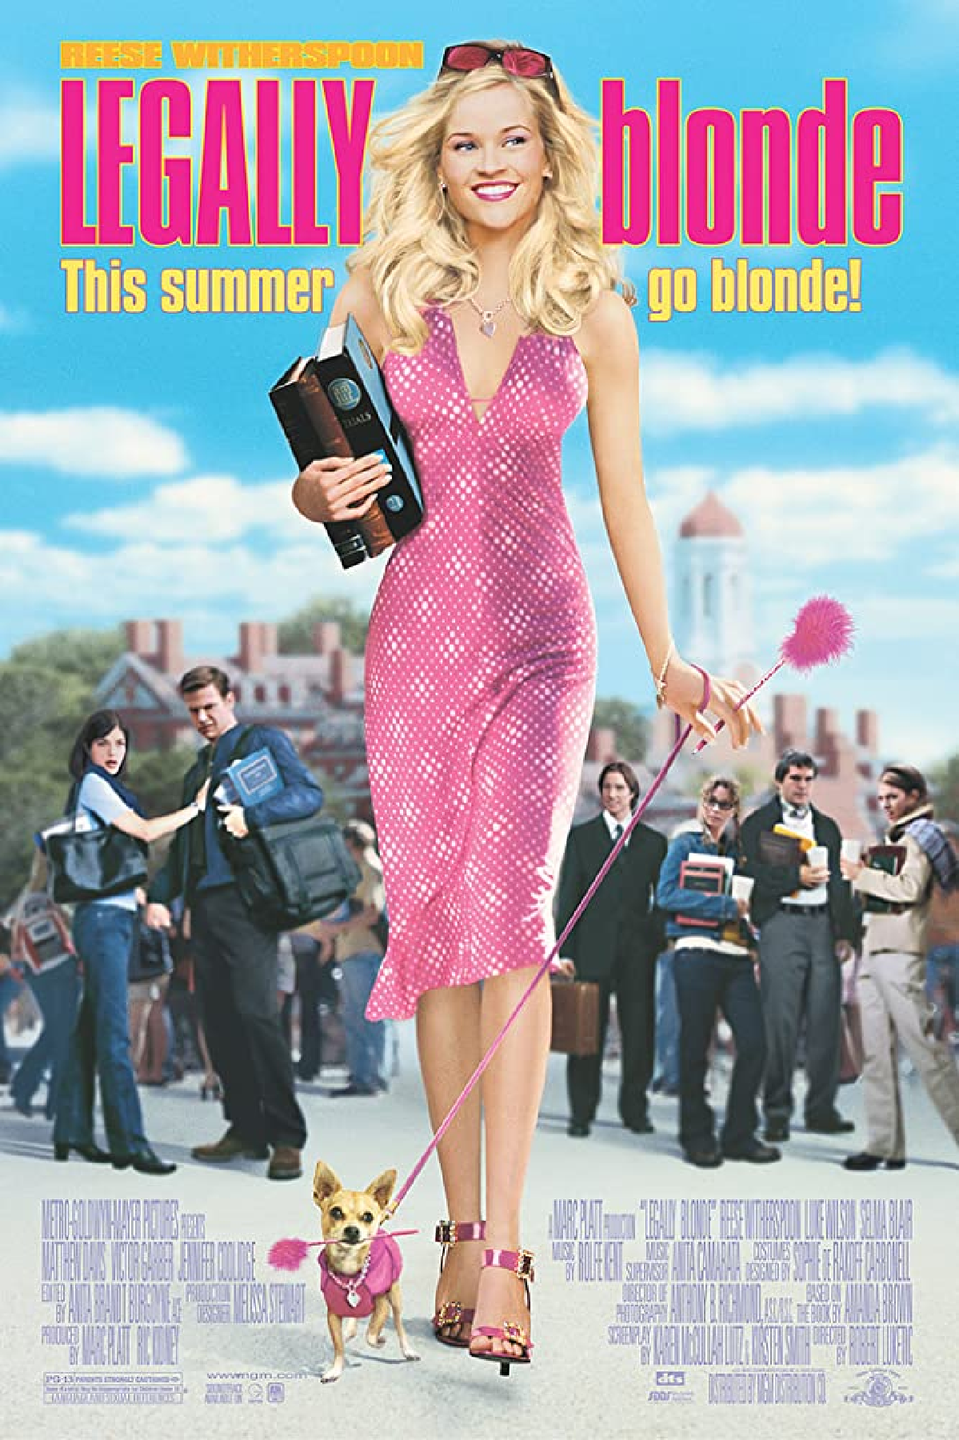 """<p>What, like getting into Harvard Law School is hard? Okay fine, so the movie isn't totally about<em> <u>college</u></em> life, per se. Nevertheless, watching Elle Woods (<strong>Reese Witherspoon</strong>) struggling to fit in at Harvard and trying to win over her ex-boyfriend will surely take you back to those important self-discovery years. </p><p><a class=""""link rapid-noclick-resp"""" href=""""https://www.amazon.com/Legally-Blonde-Reese-Witherspoon/dp/B000VCLGBY/ref=sr_1_2?dchild=1&keywords=legally+blonde&qid=1596922357&sr=8-2&tag=syn-yahoo-20&ascsubtag=%5Bartid%7C10055.g.33513354%5Bsrc%7Cyahoo-us"""" rel=""""nofollow noopener"""" target=""""_blank"""" data-ylk=""""slk:WATCH NOW"""">WATCH NOW</a></p>"""